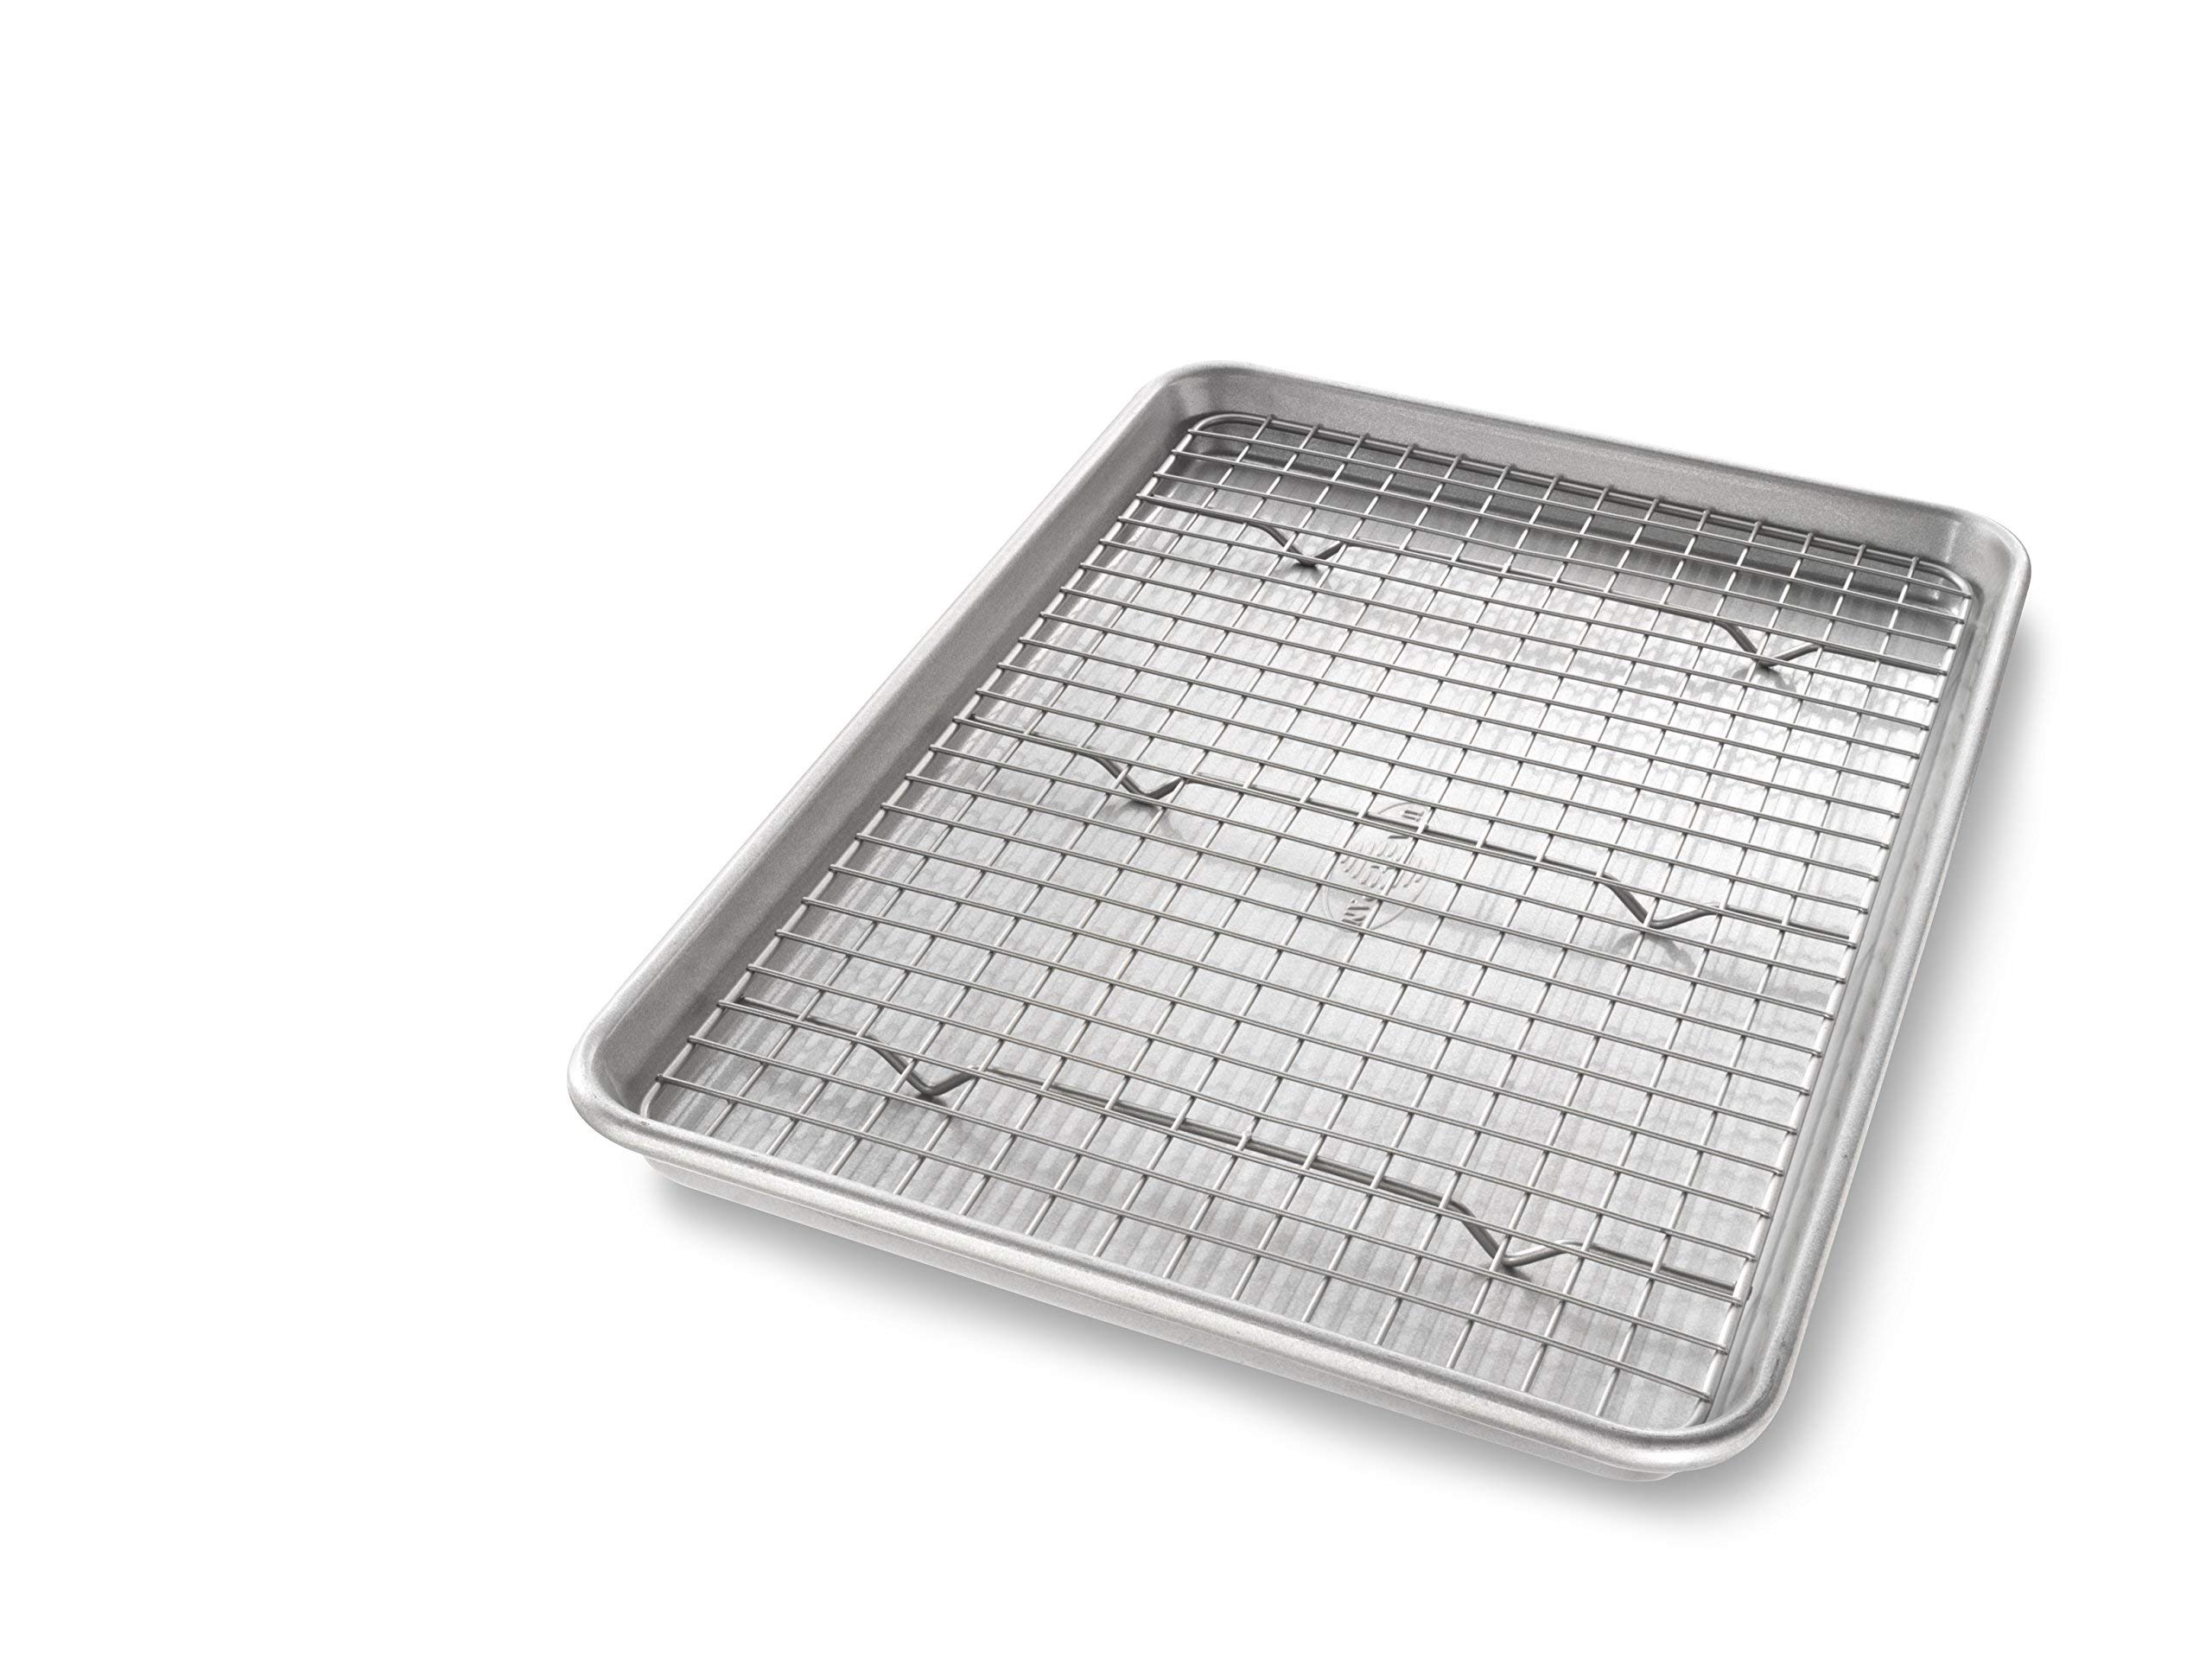 USA Pan 1605CR Jelly Roll Baking Pan and Bakeable Nonstick Cooling Rack, Metal (Renewed)